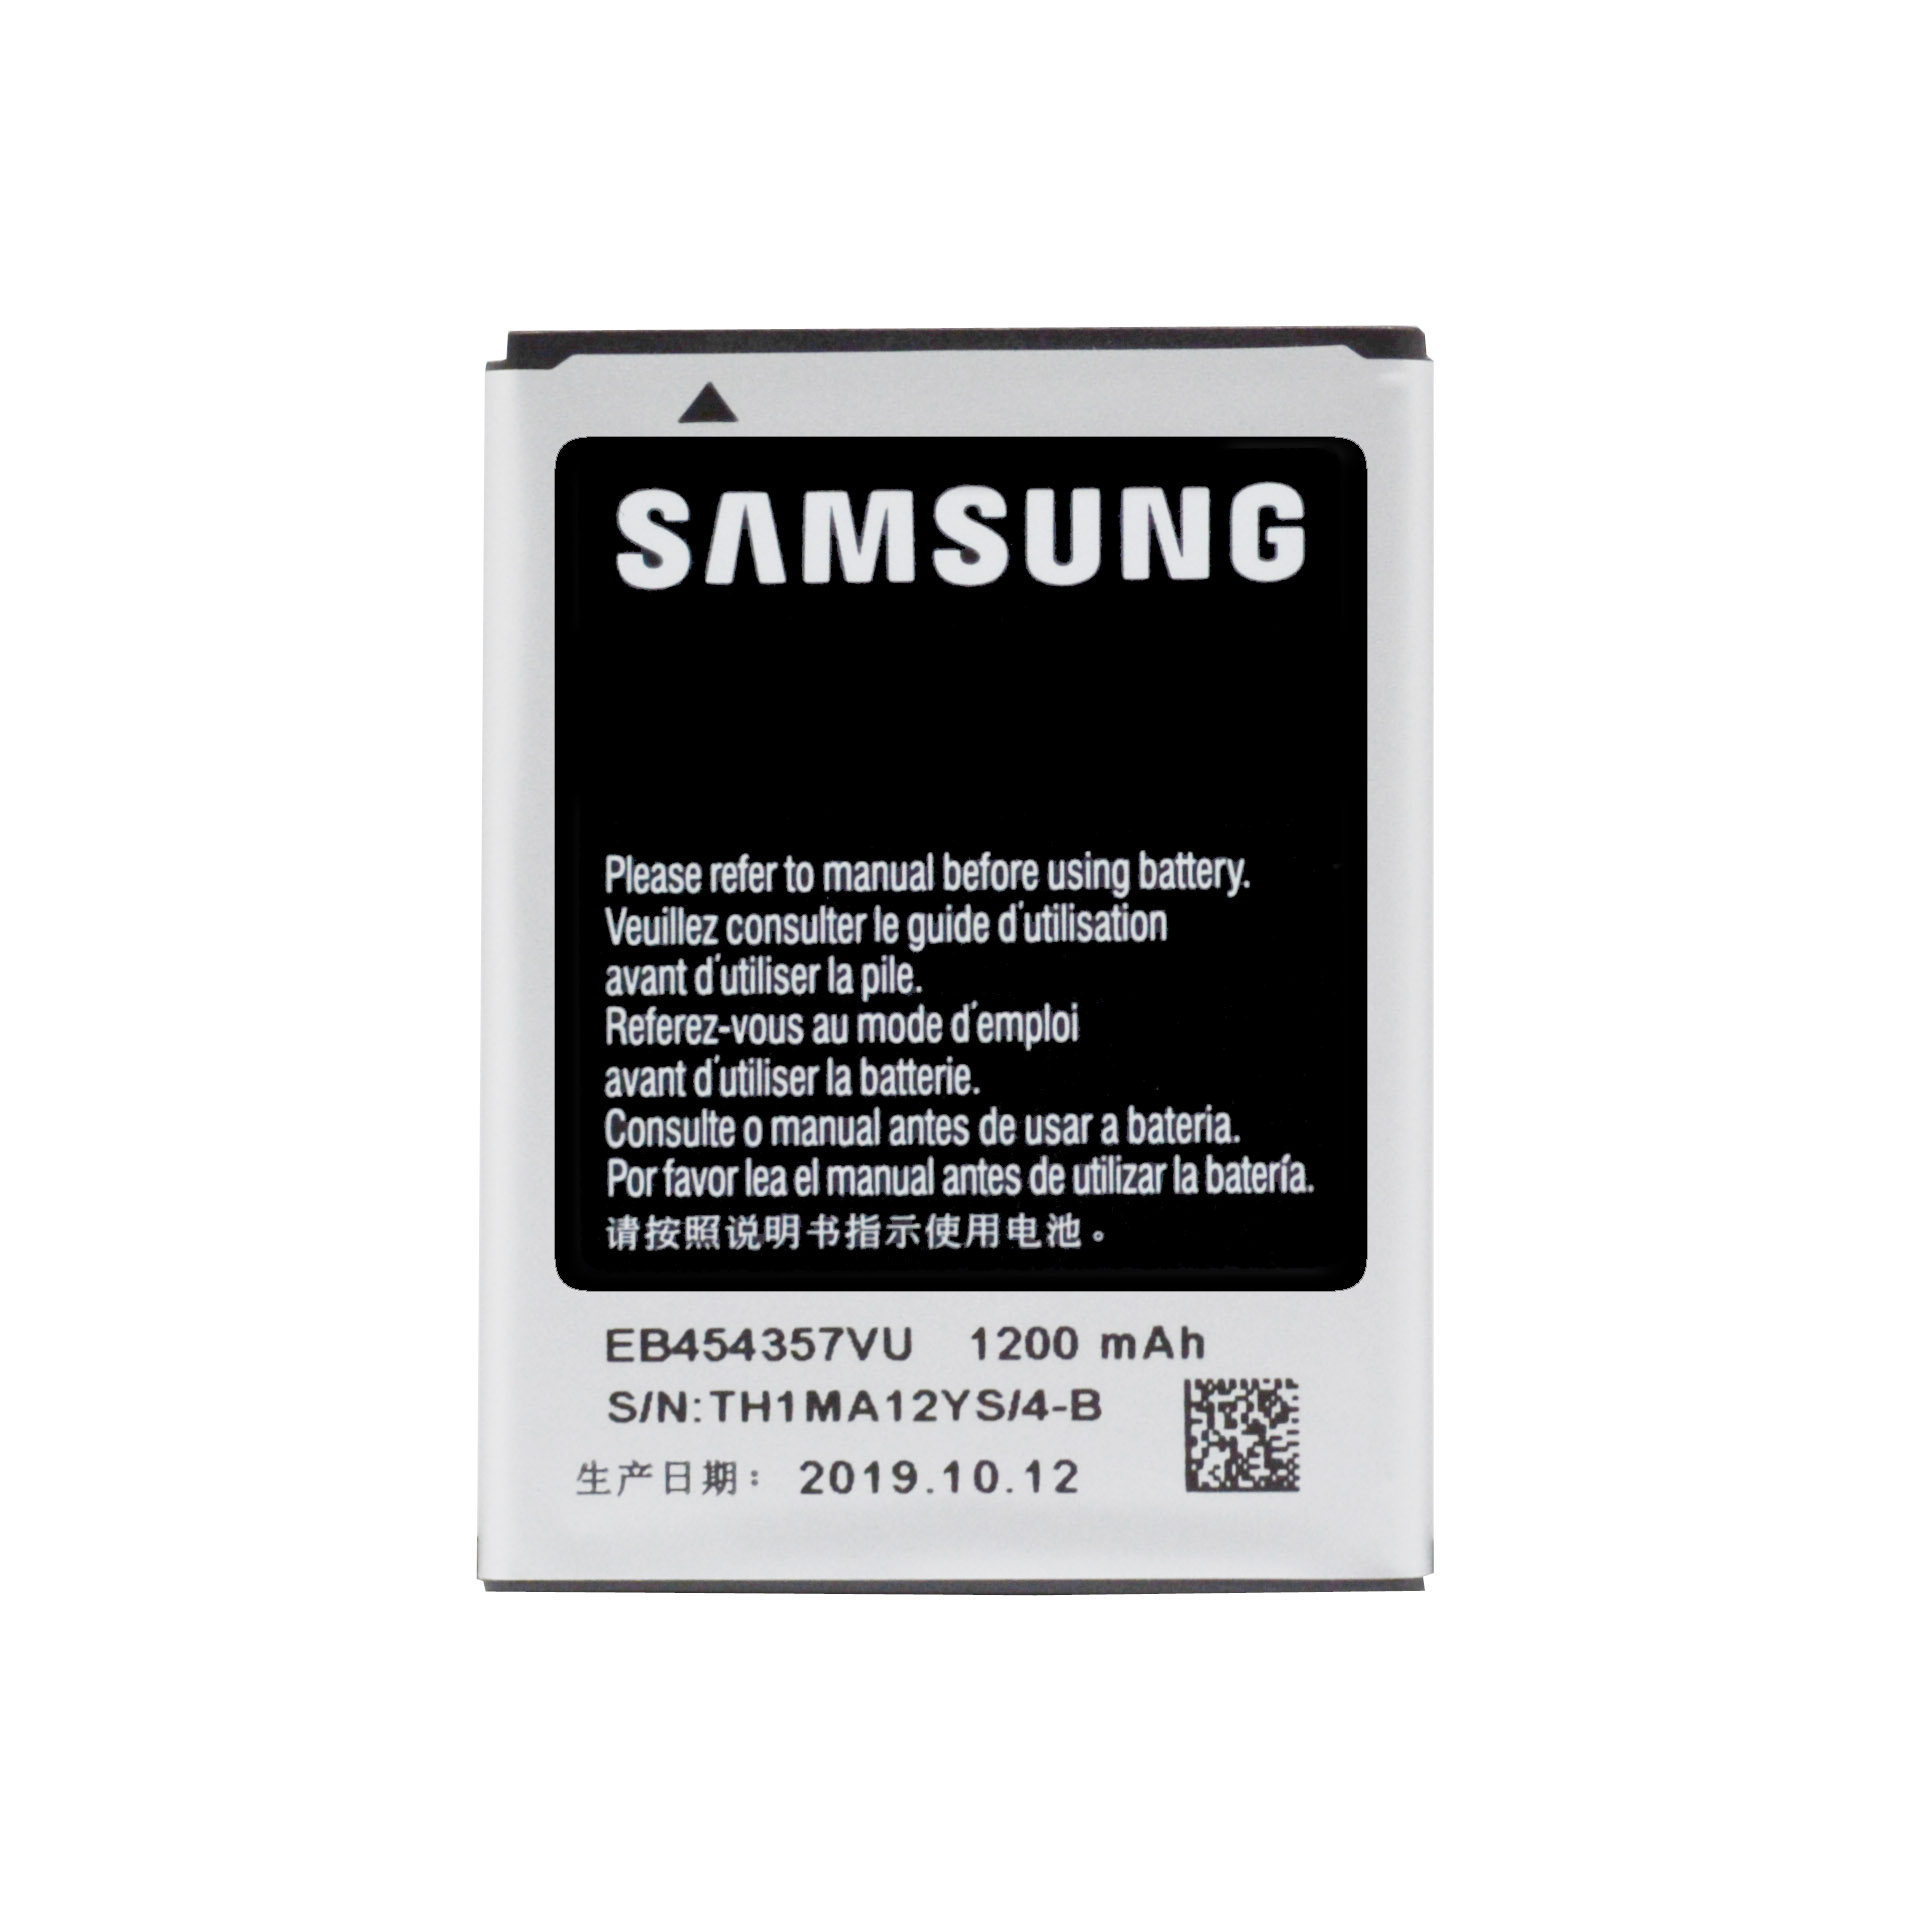 Original Replacement Battery EB454357VU For <font><b>Samsung</b></font> Galaxy Y S5360 Y Pro B5510 Wave S5380 Pocket <font><b>S5300</b></font> Chat B5330 1200mAh image